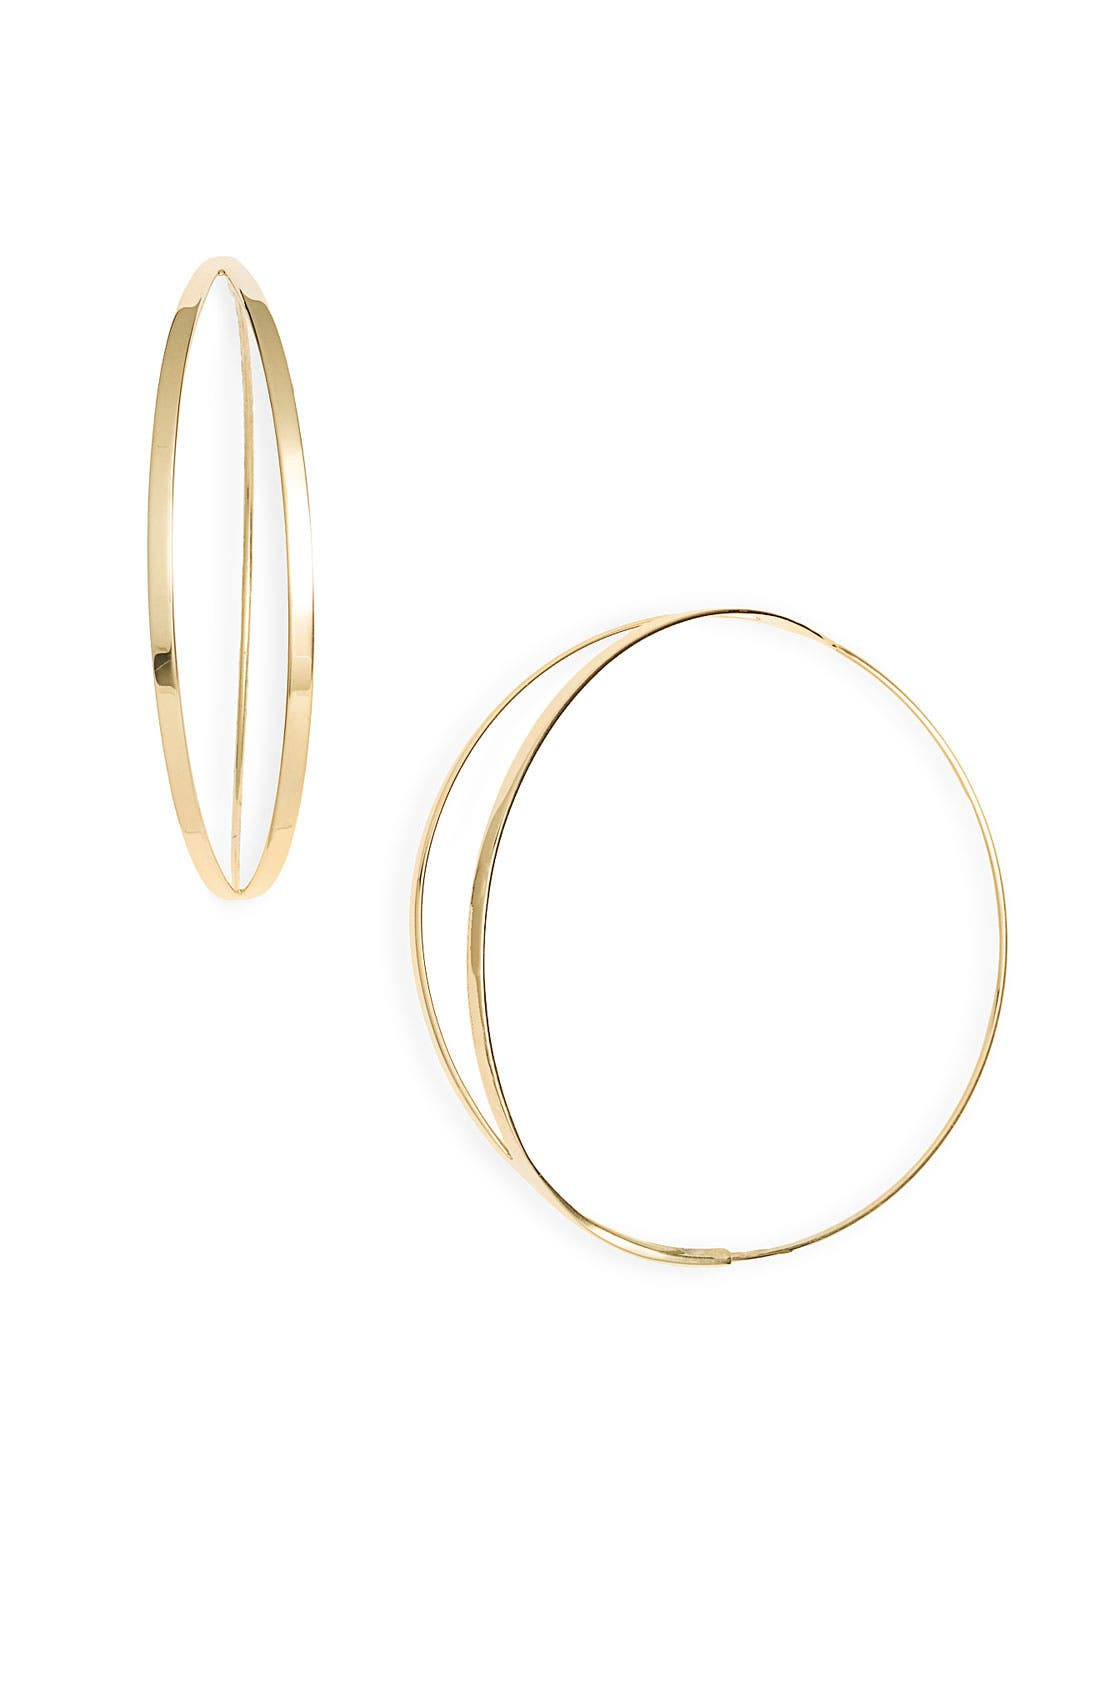 Alternate Image 1 Selected - Lana Jewelry 'Small Flirt' Hoop Earrings